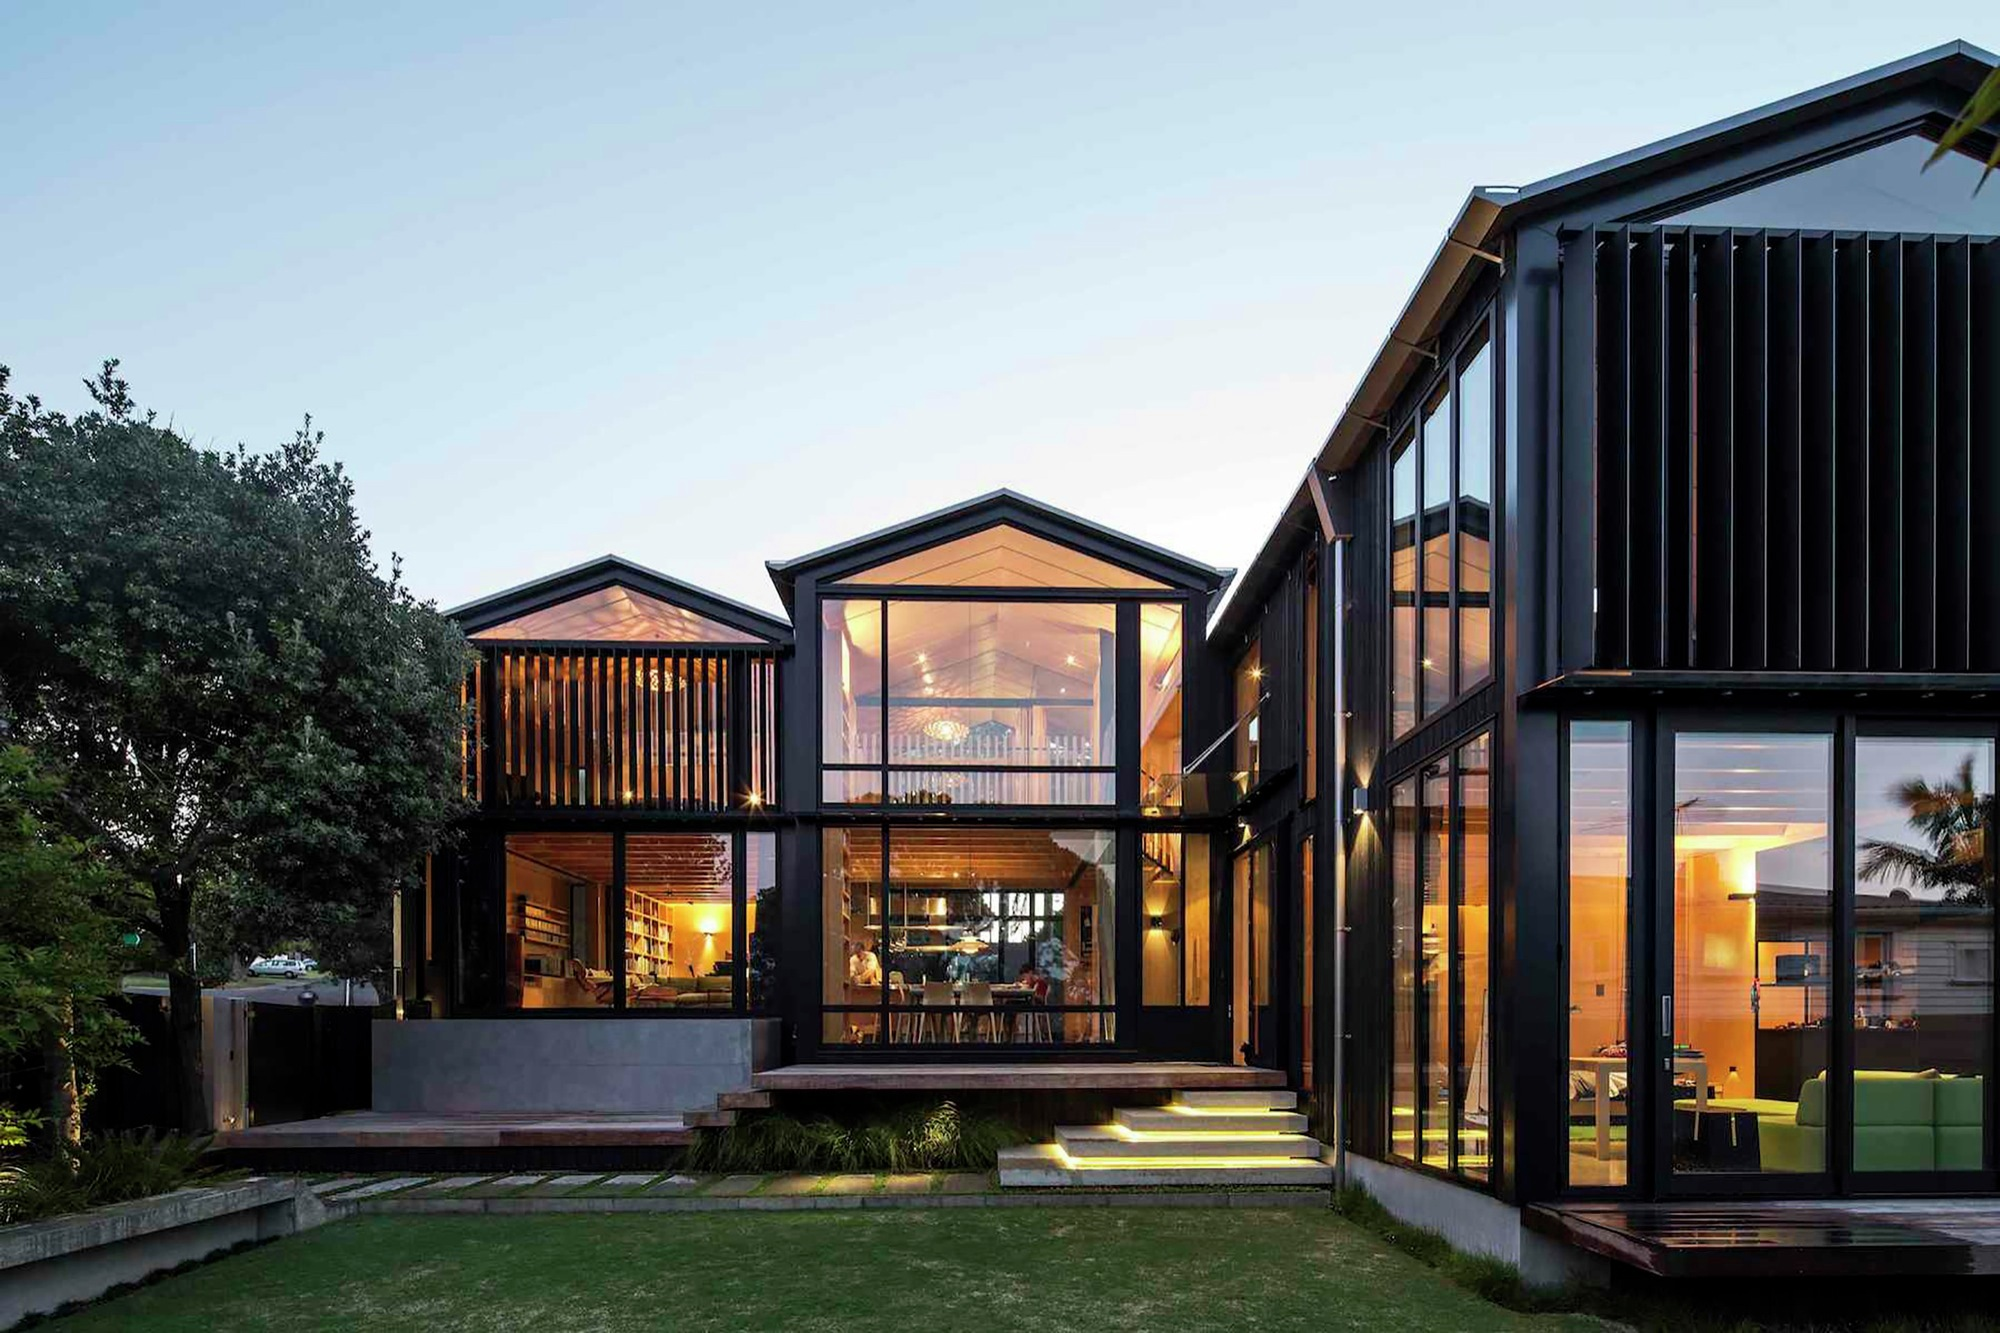 Boatsheds / Strachan Group Architects + Rachael Rush